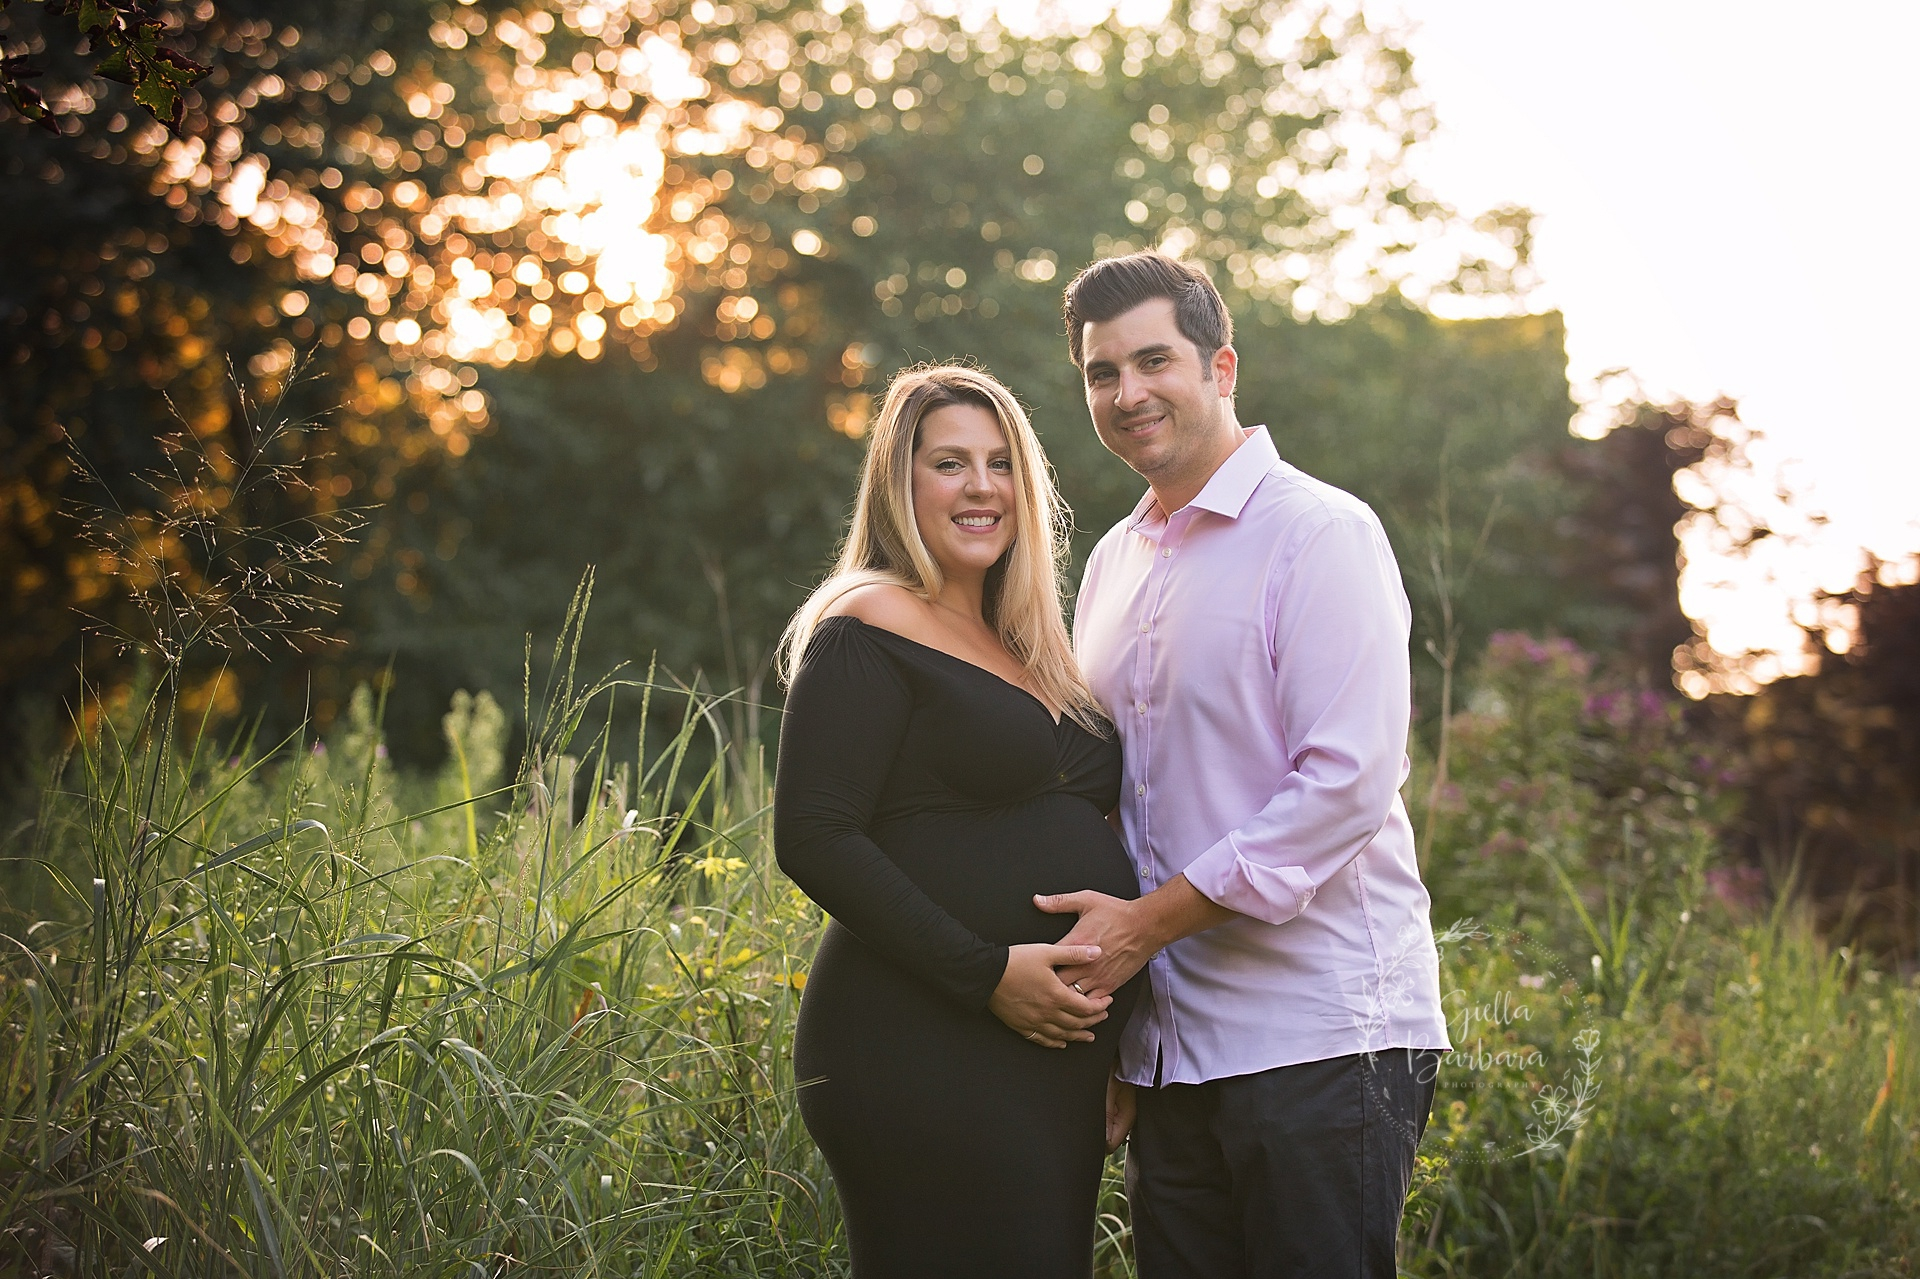 Maternity Session at The Celery Farm